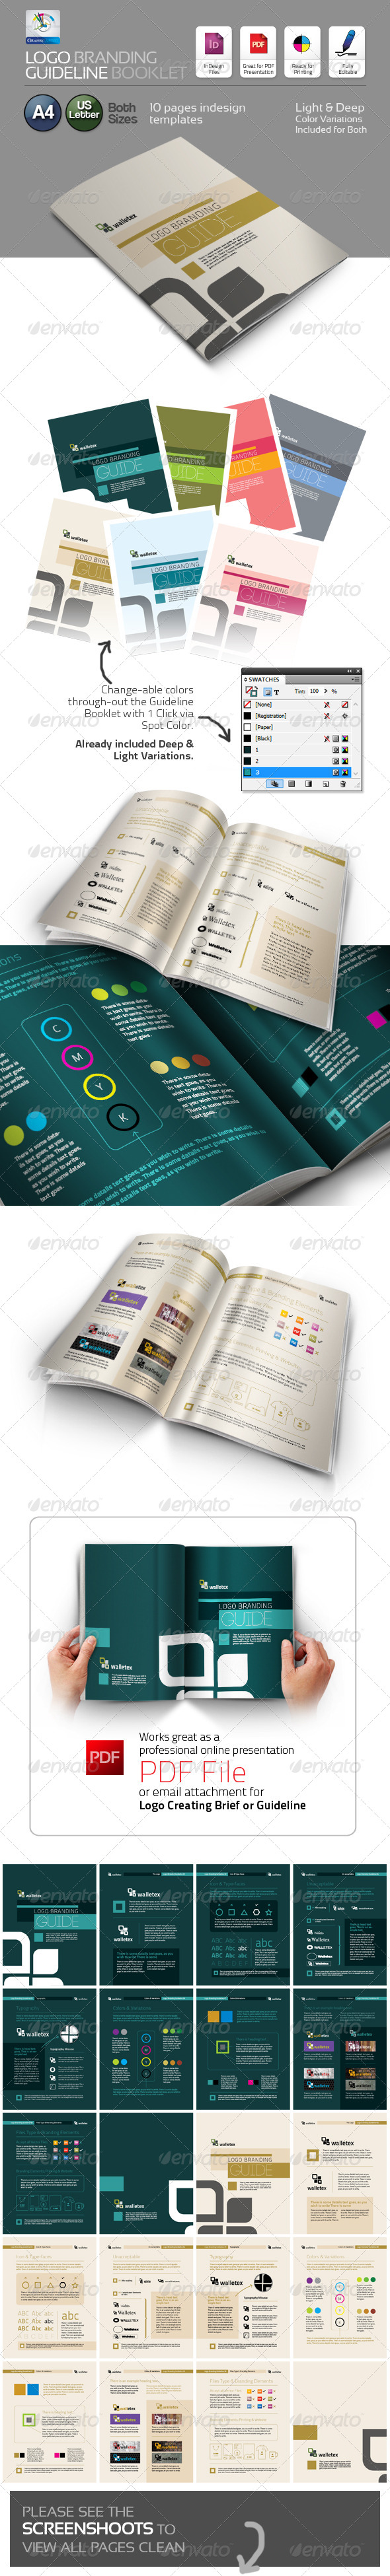 Logo Branding Guideline Booklet - Proposals & Invoices Stationery